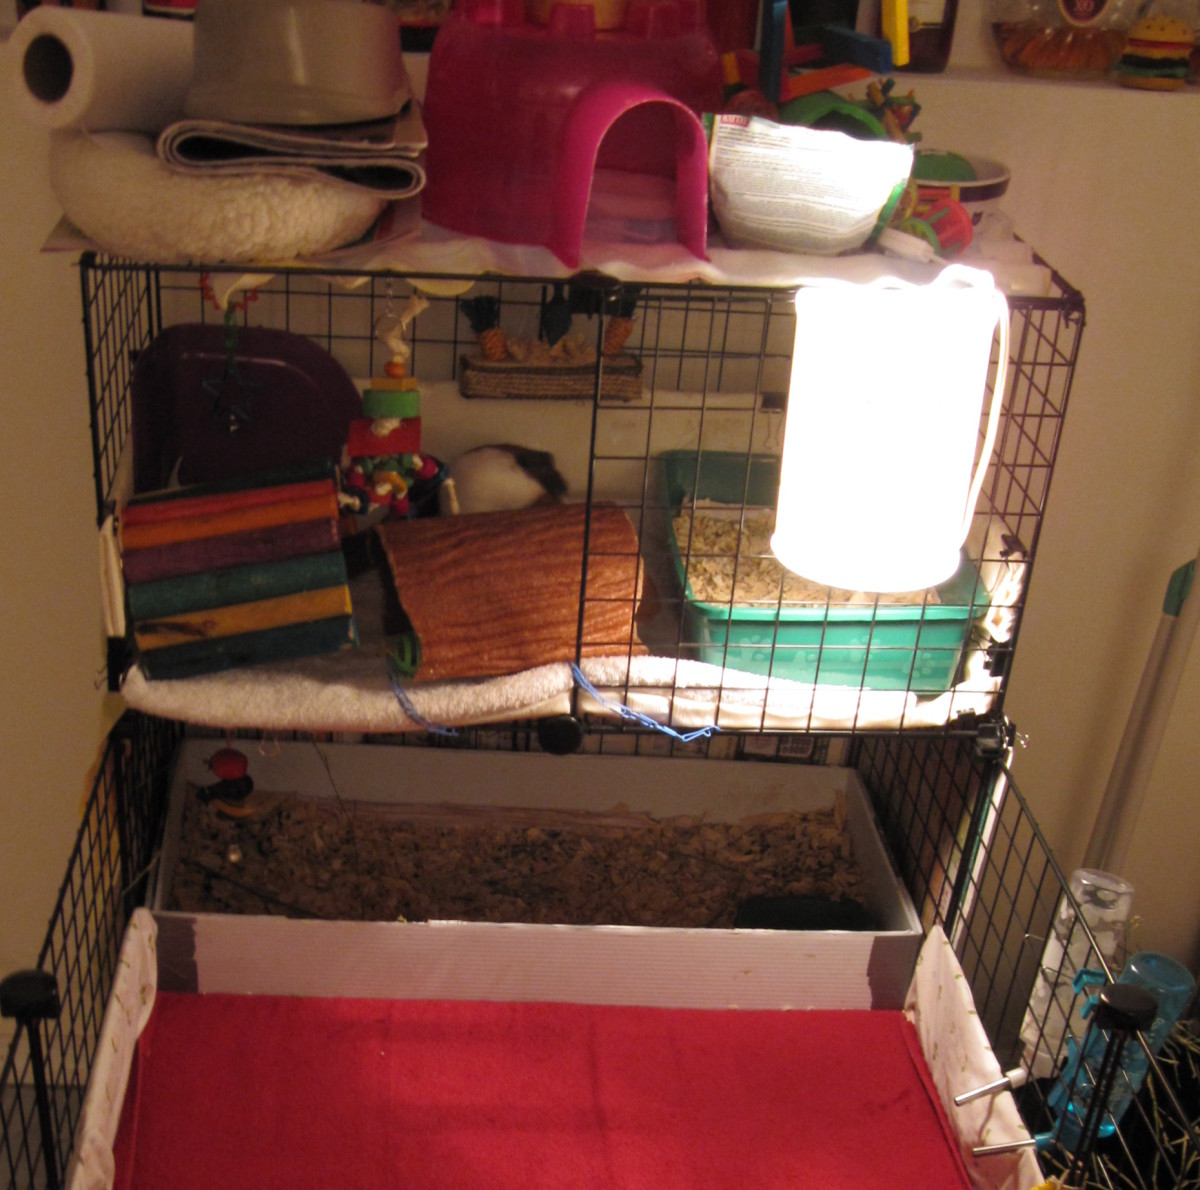 Cleaning A Guinea Pig S Cage The Fast And Easy Way Pethelpful